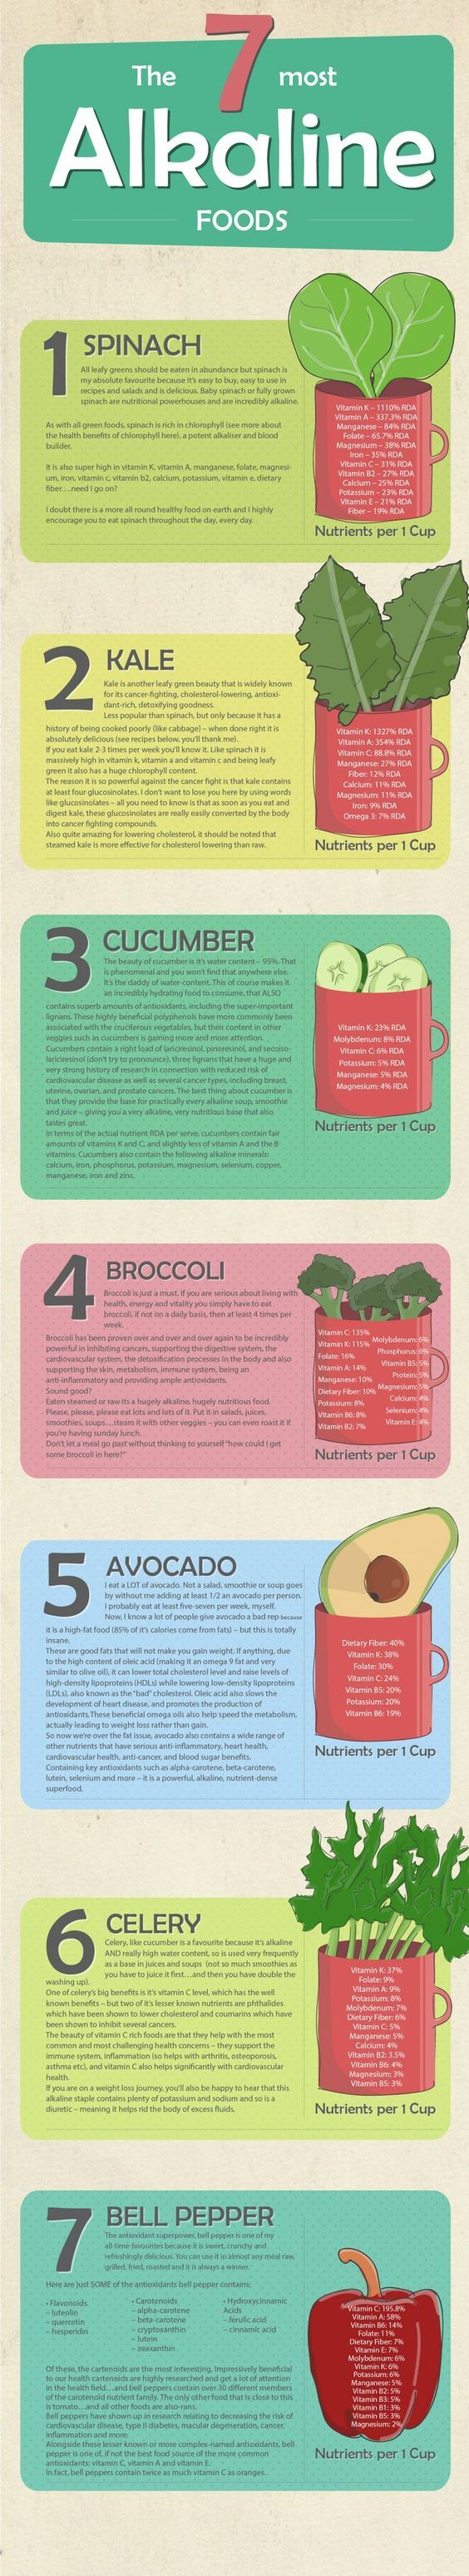 "7 Most Alkaline Foods : "" When you eat alkaline foods, your body tends to emulsify fat, thus making it far easier for the body to digest and eliminate toxins. "" Here is a handy little infographic found on Pinterest featuring some of the most alkaline foods on the planet (7). *** Subscribe via email for […]"